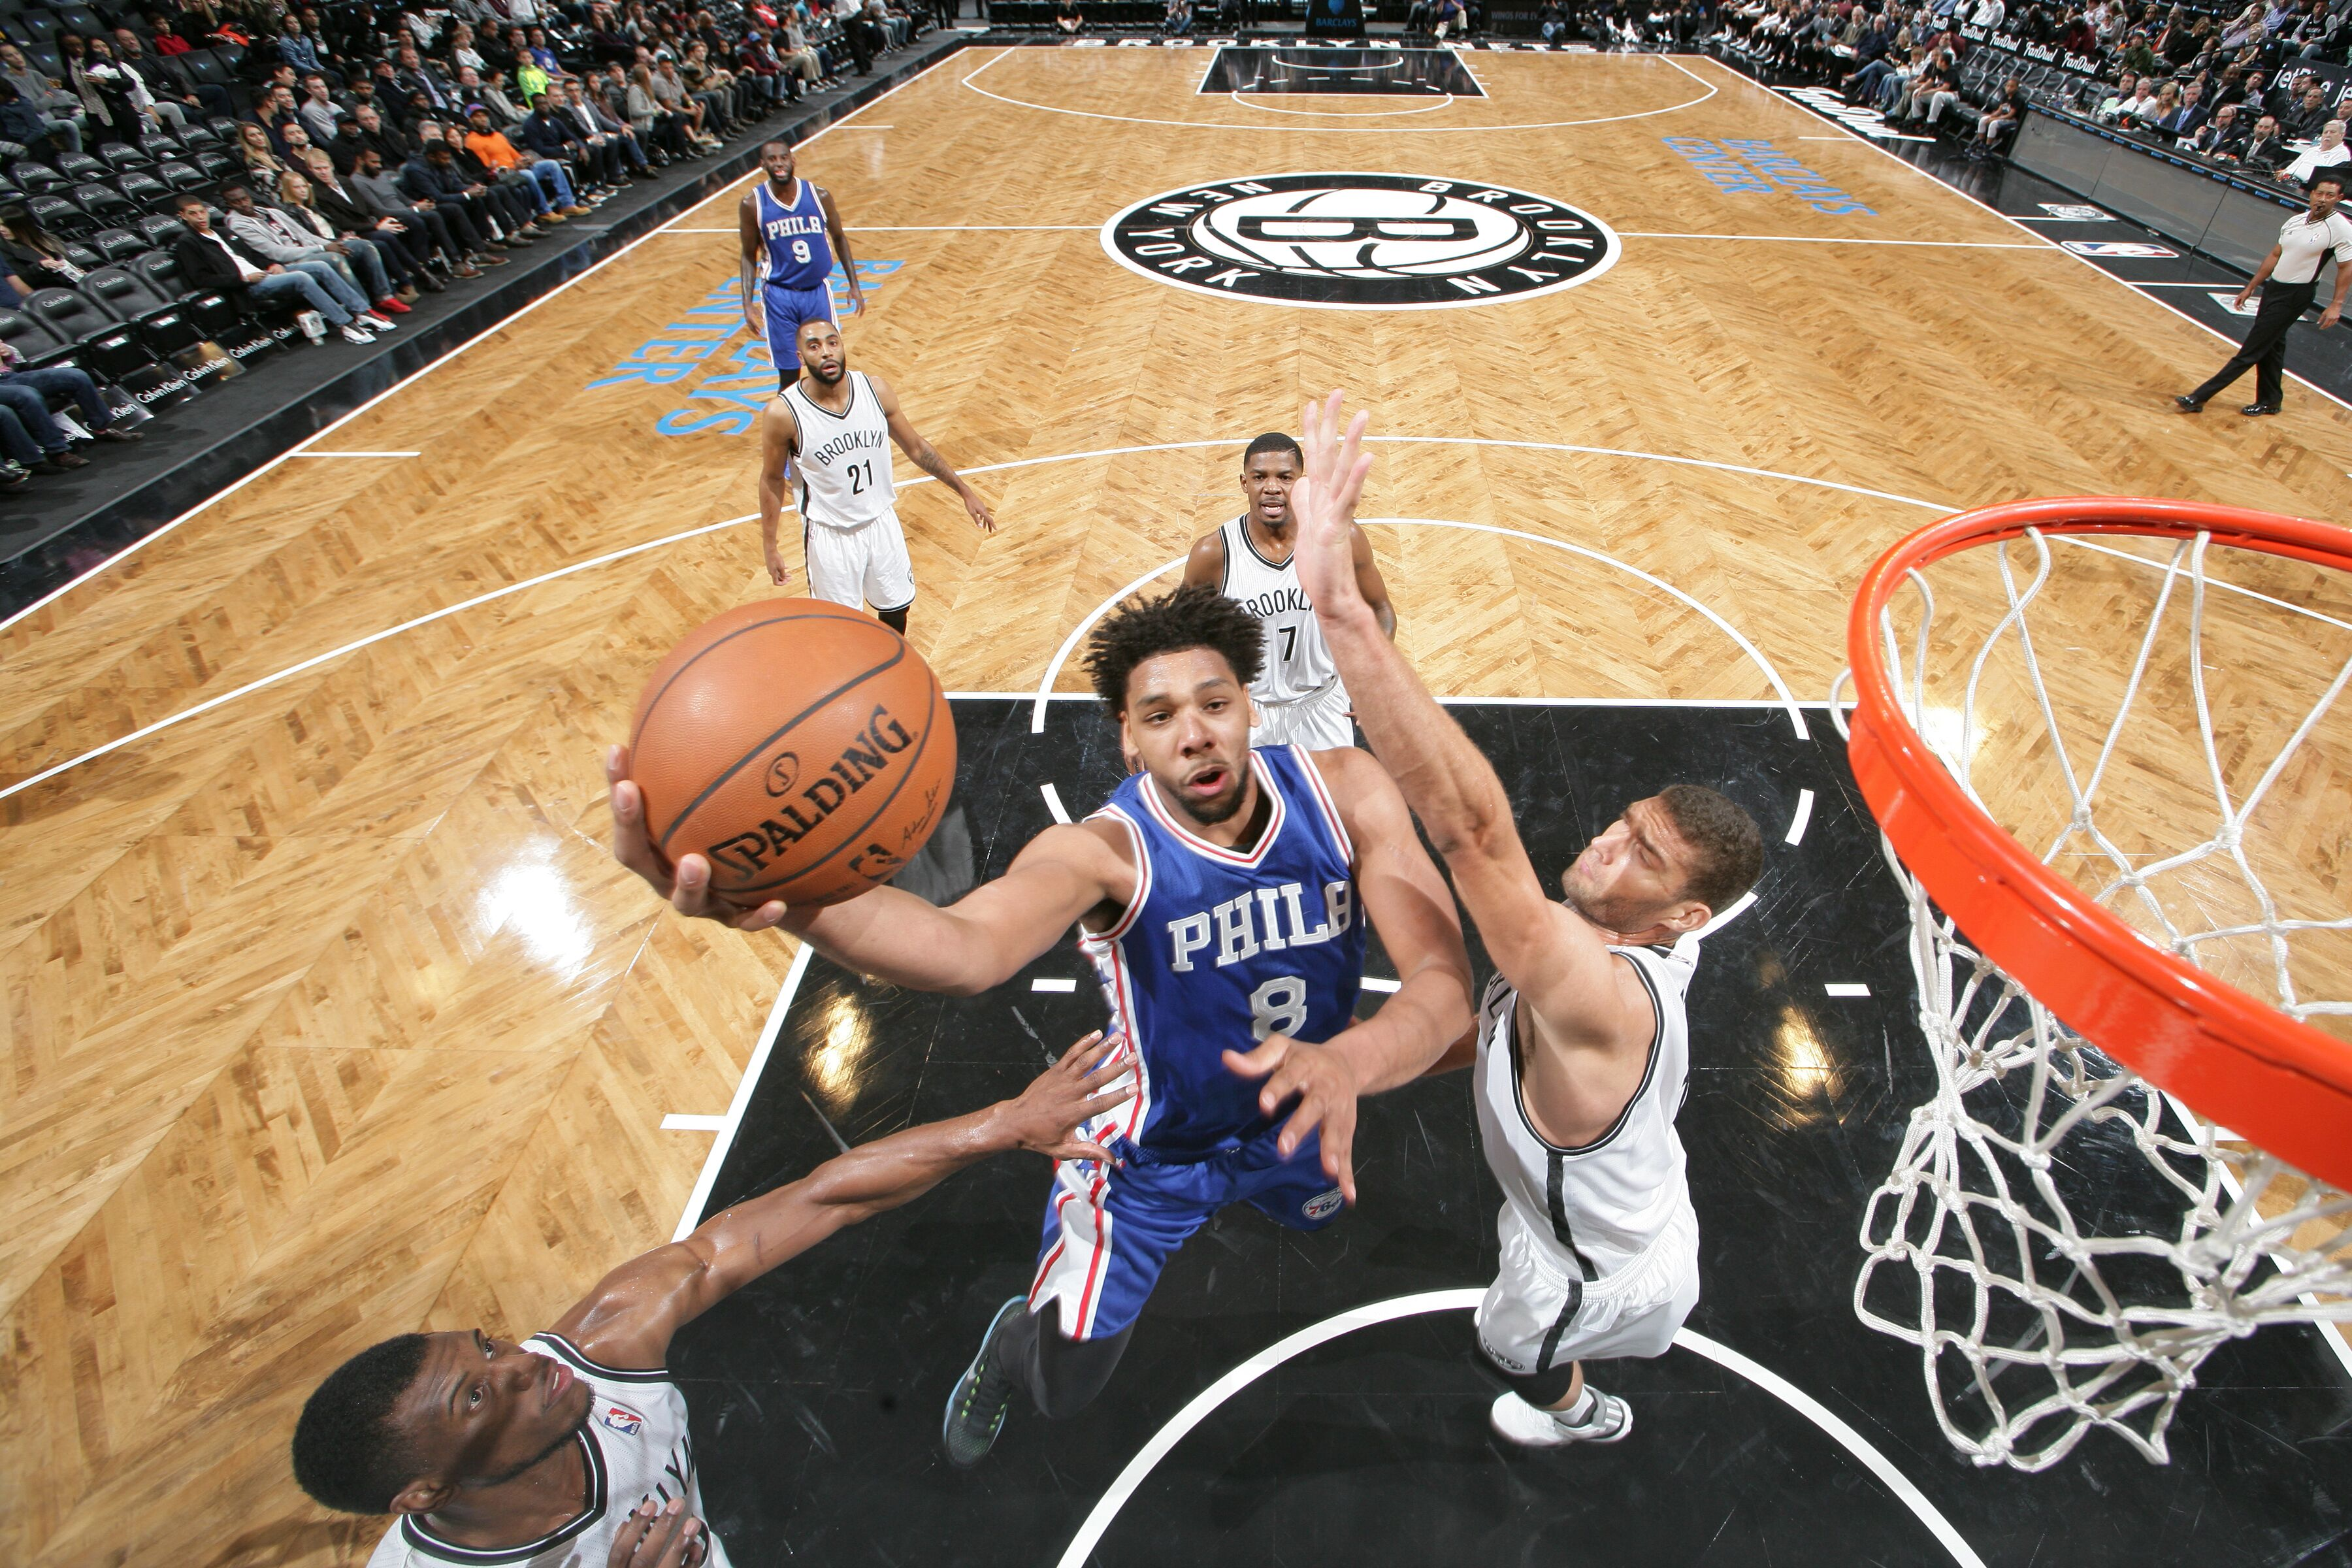 Brooklyn Nets need to consider trading for Jahlil Okafor